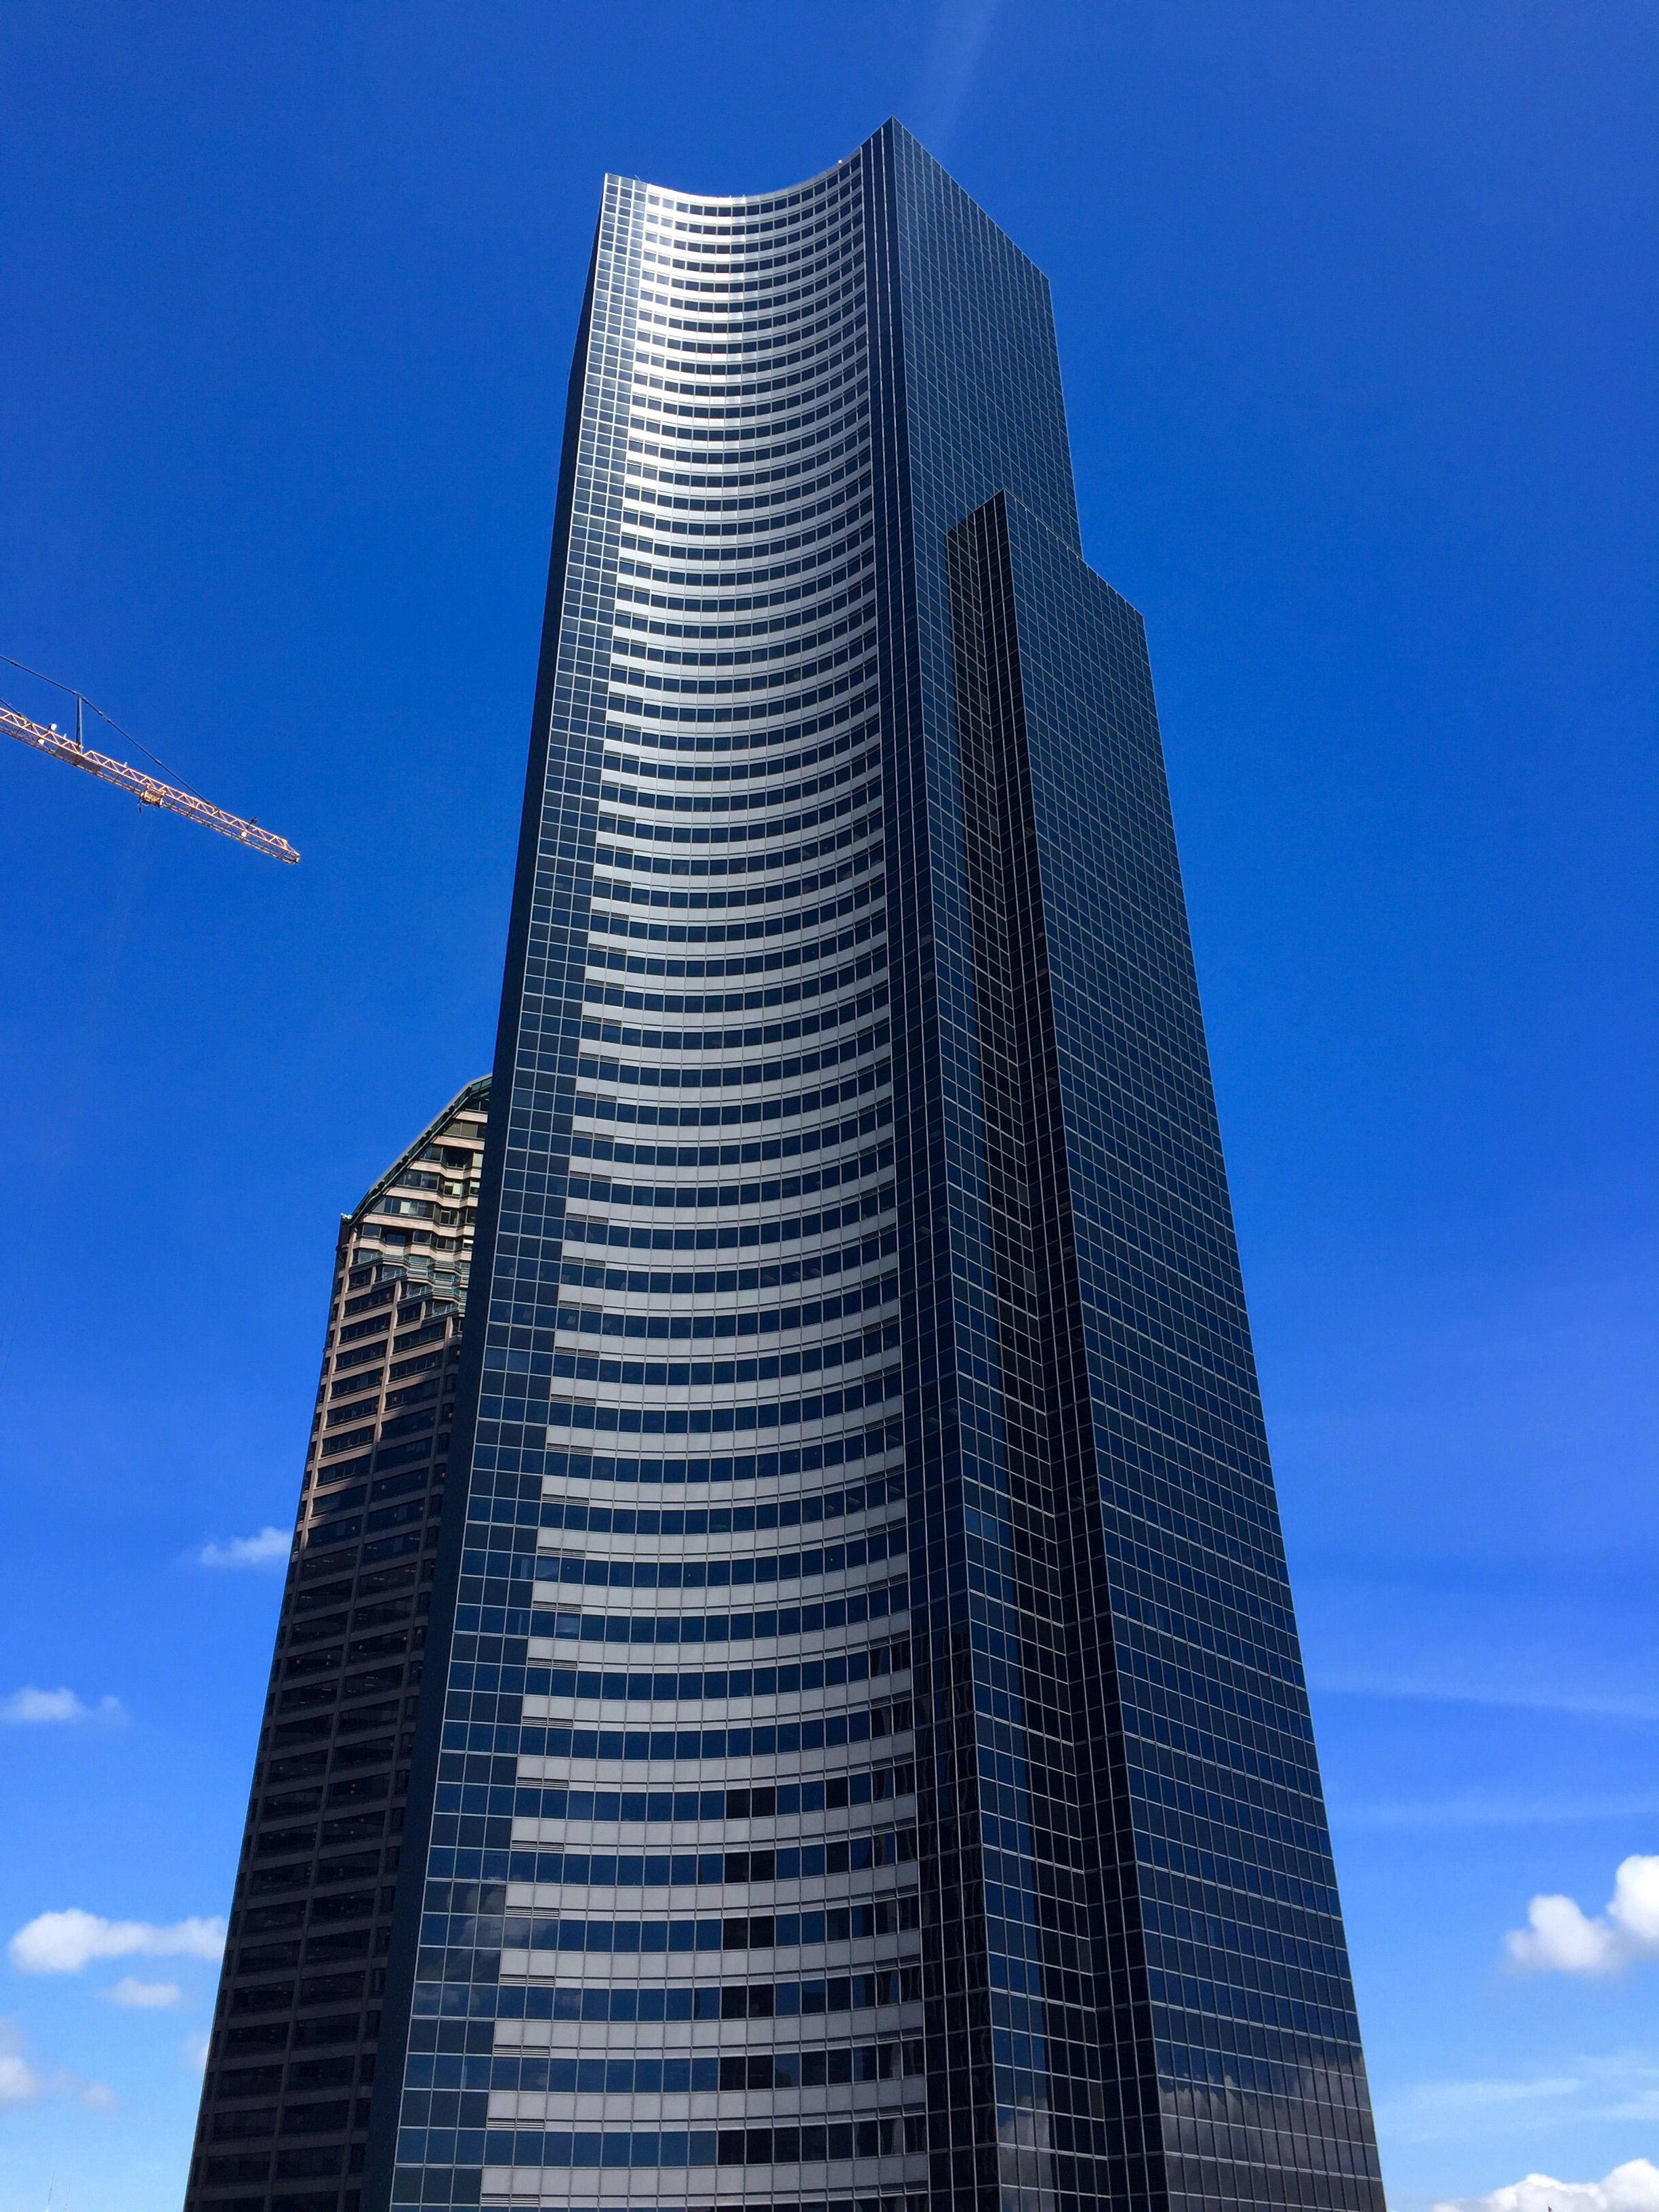 """Seattle's Columbia Center, the tallest skyscraper in Washington state and site of the projekt202 """"Designing Software for People"""" event"""